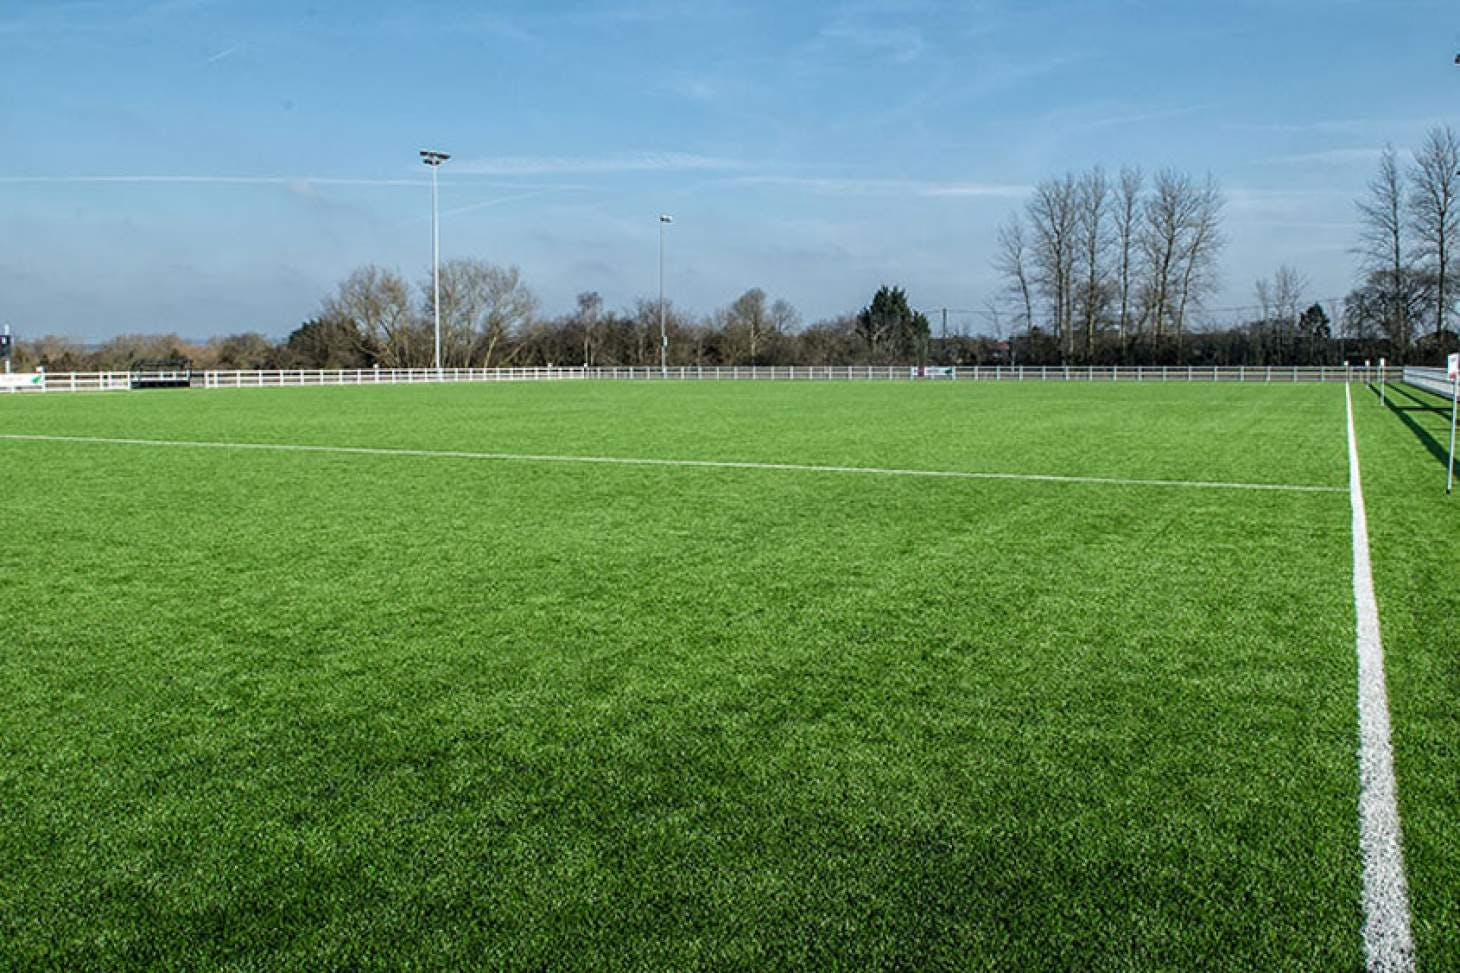 PlayFootball Harpenden 5 a side | 3G Astroturf football pitch